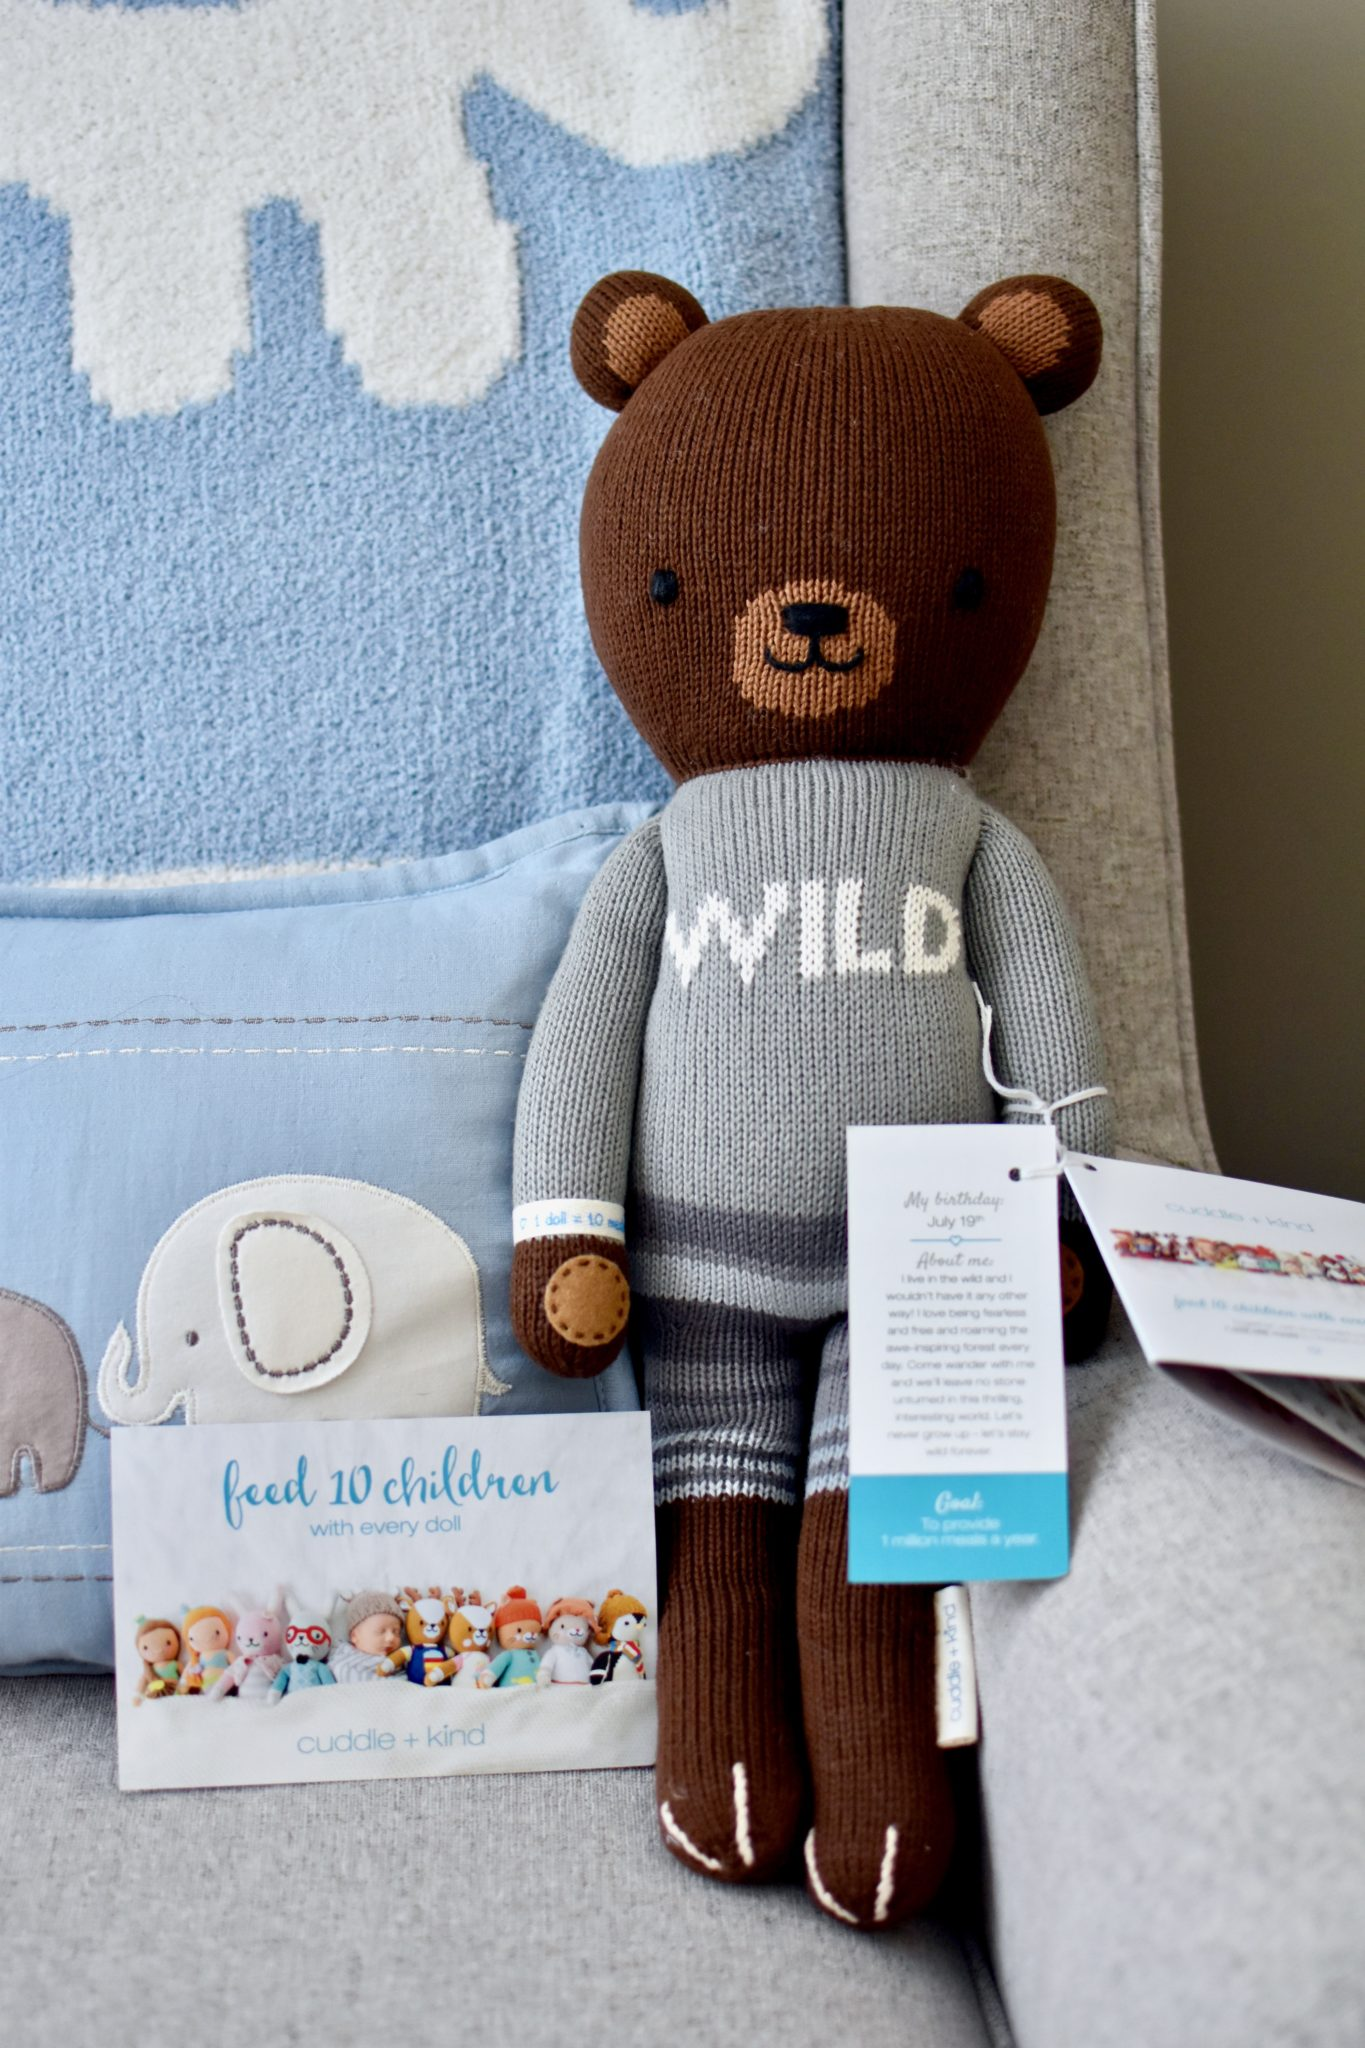 cuddle + kind nursery addition